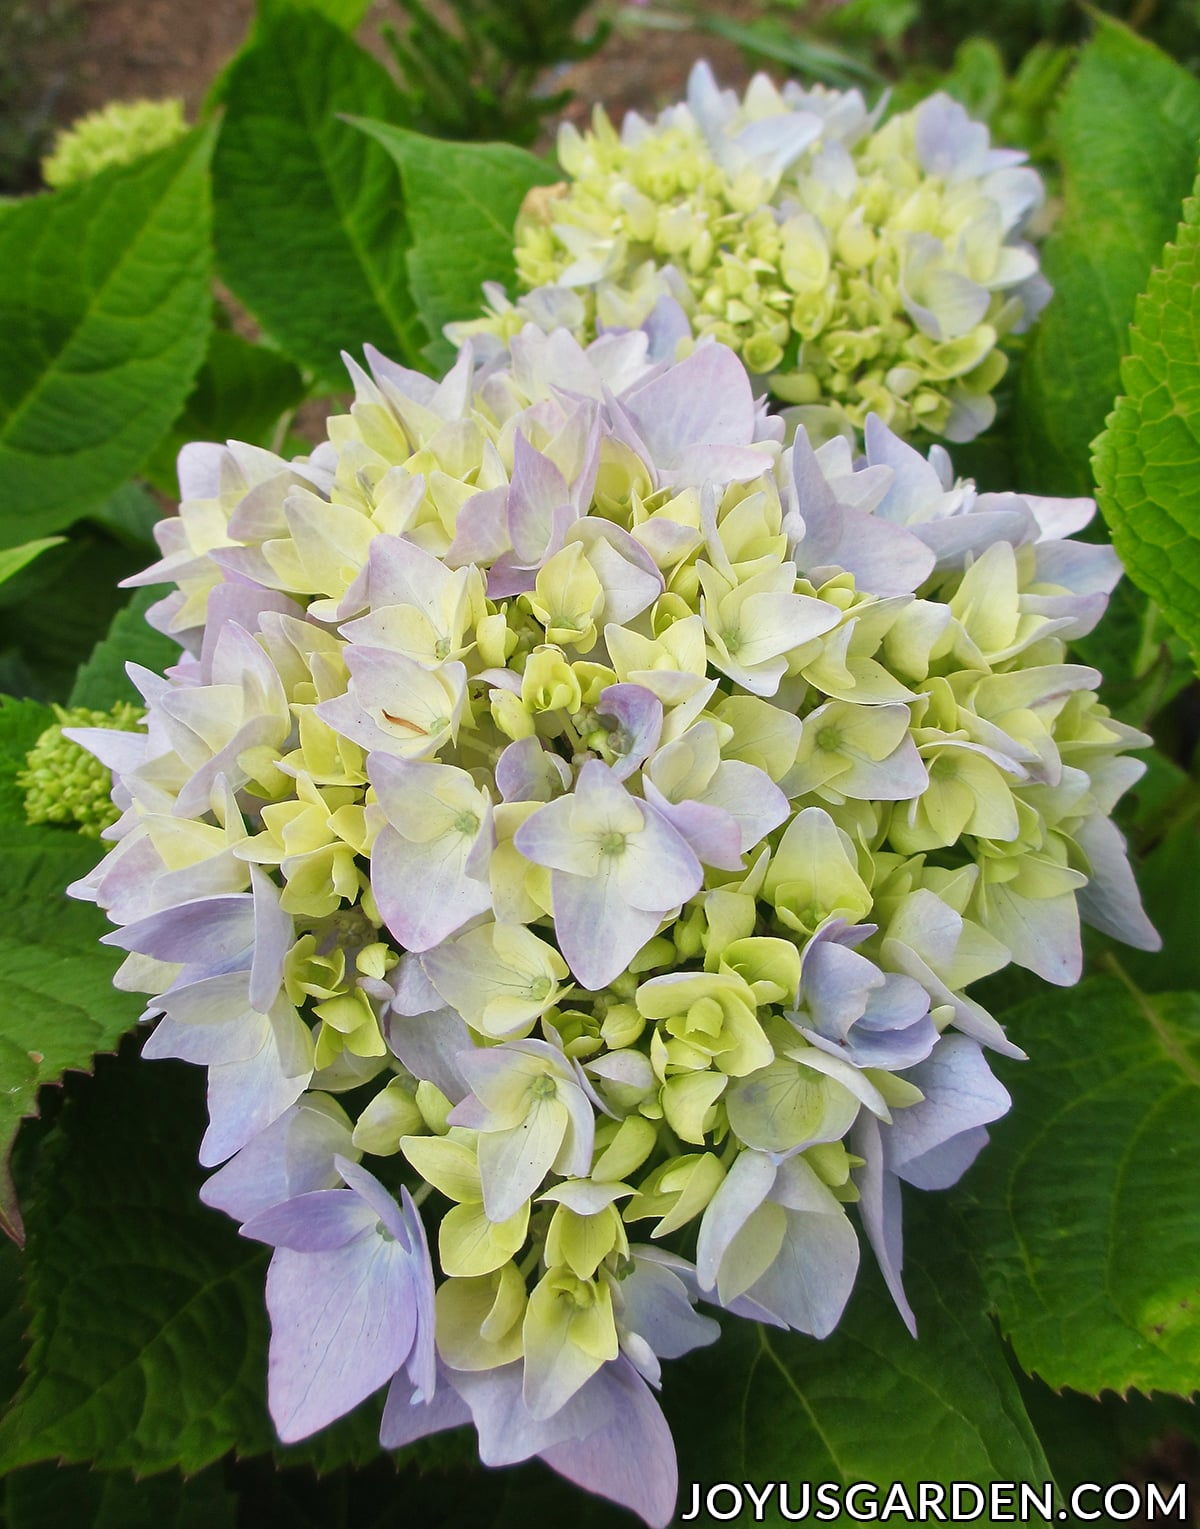 two hydrangea flower heads on a plant both with pale lavender-blue & green blooms